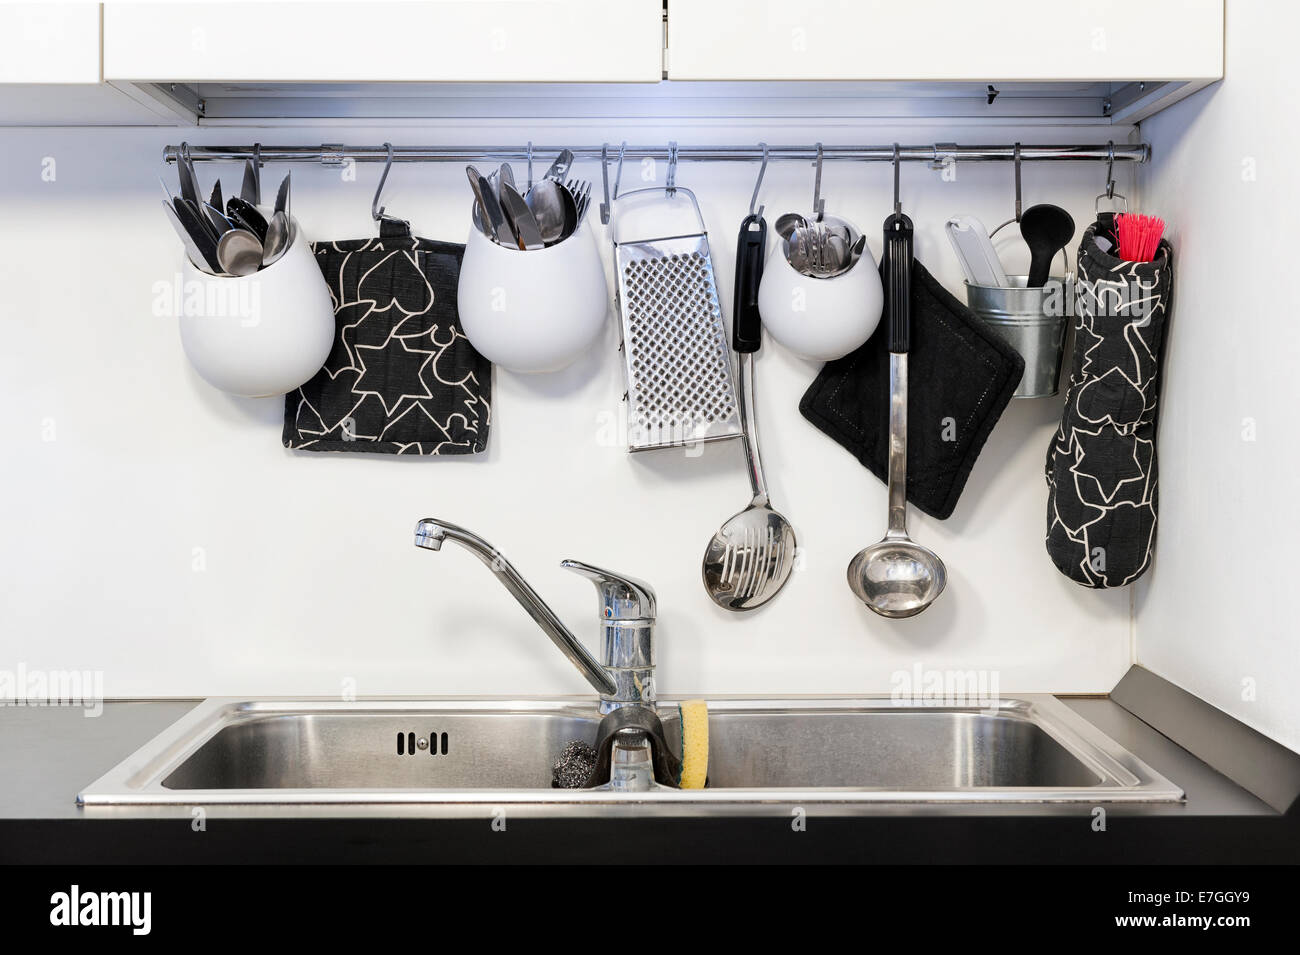 kitchen utensils hanging above the sink - Stock Image